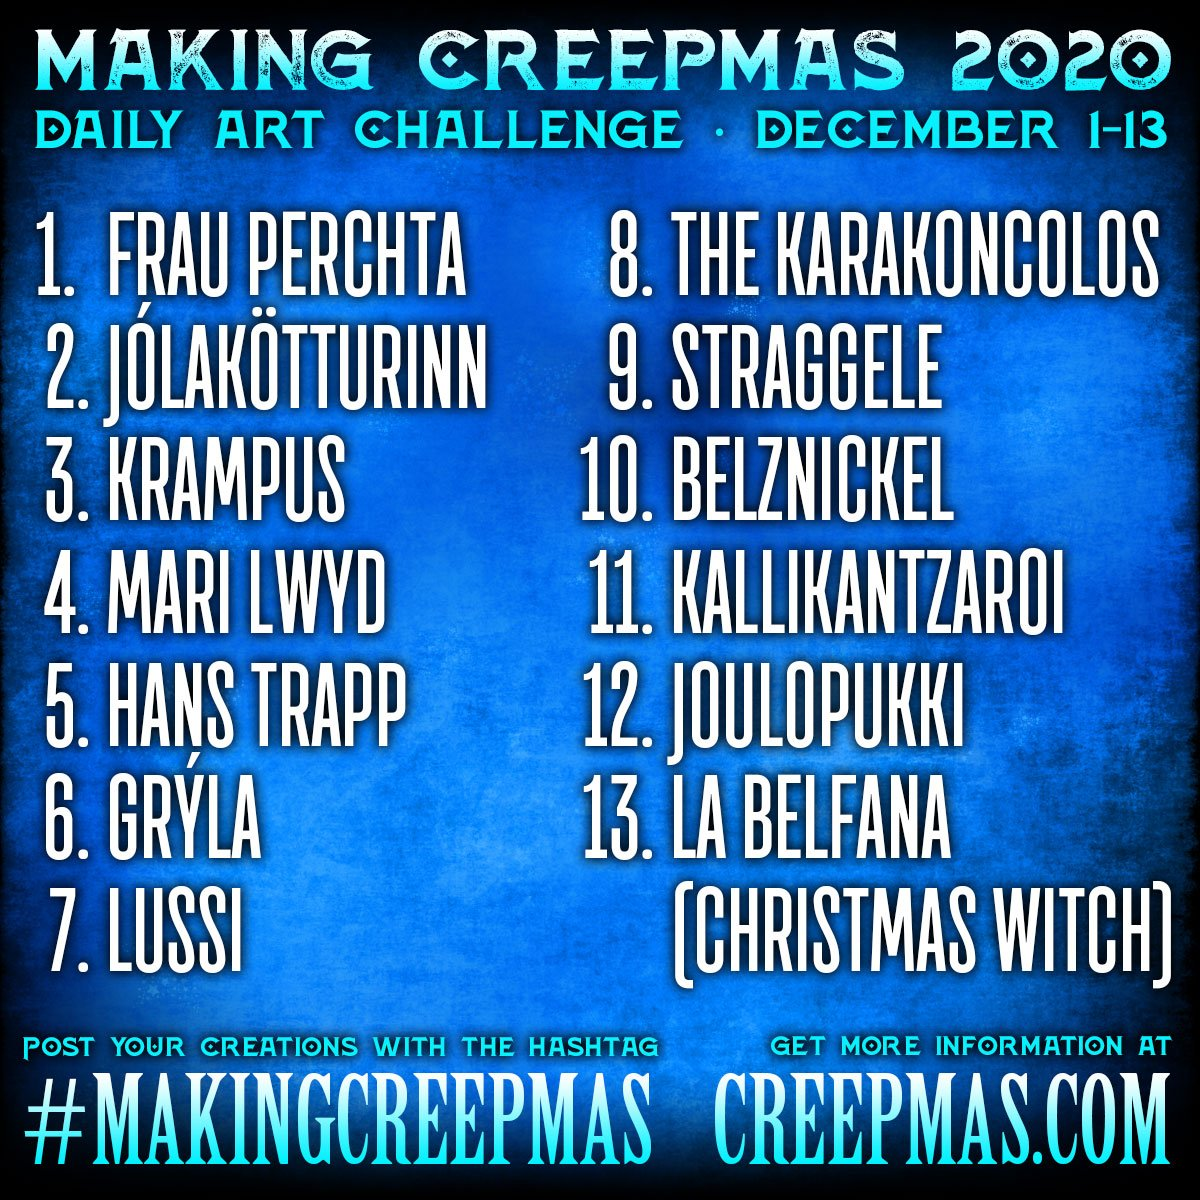 Making Creepmas 2020 Prompt List